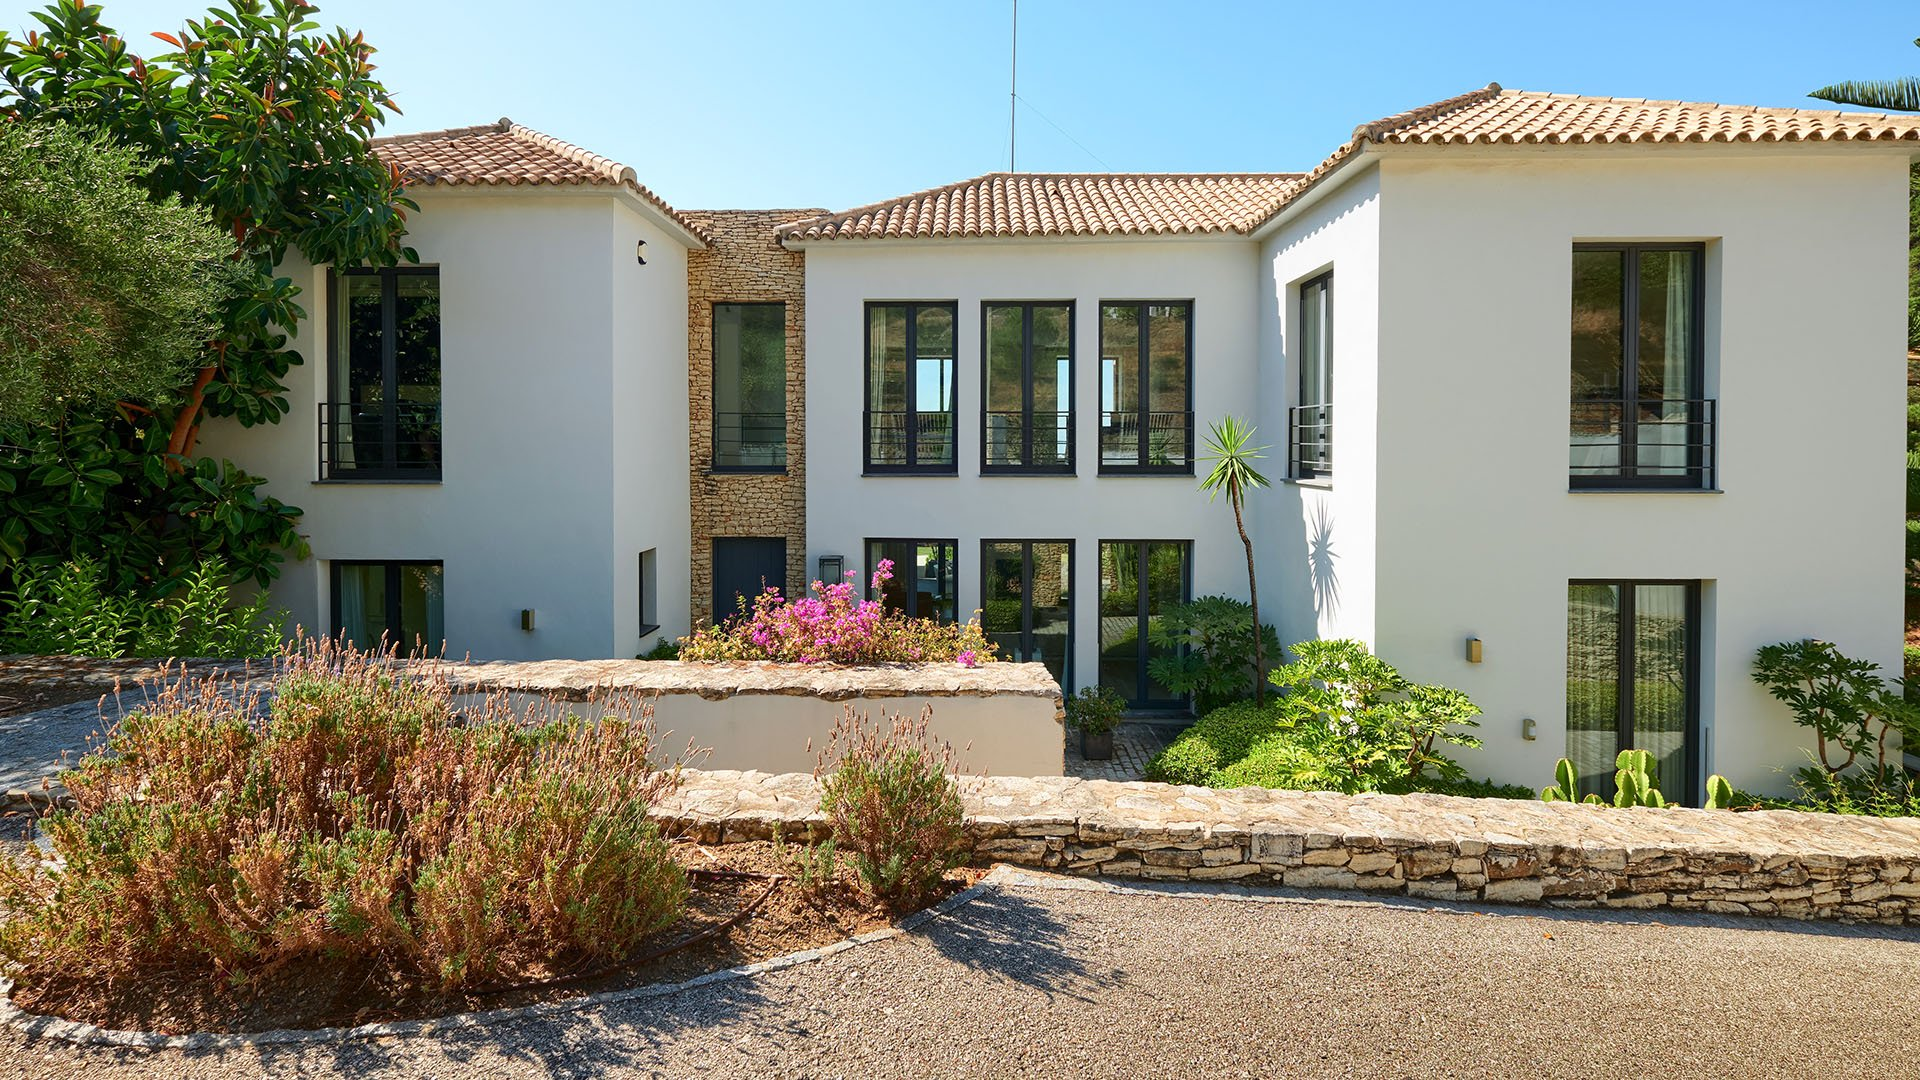 Casa El Tiempo: Impressive villa surrounded by nature and stunning mountain and sea views